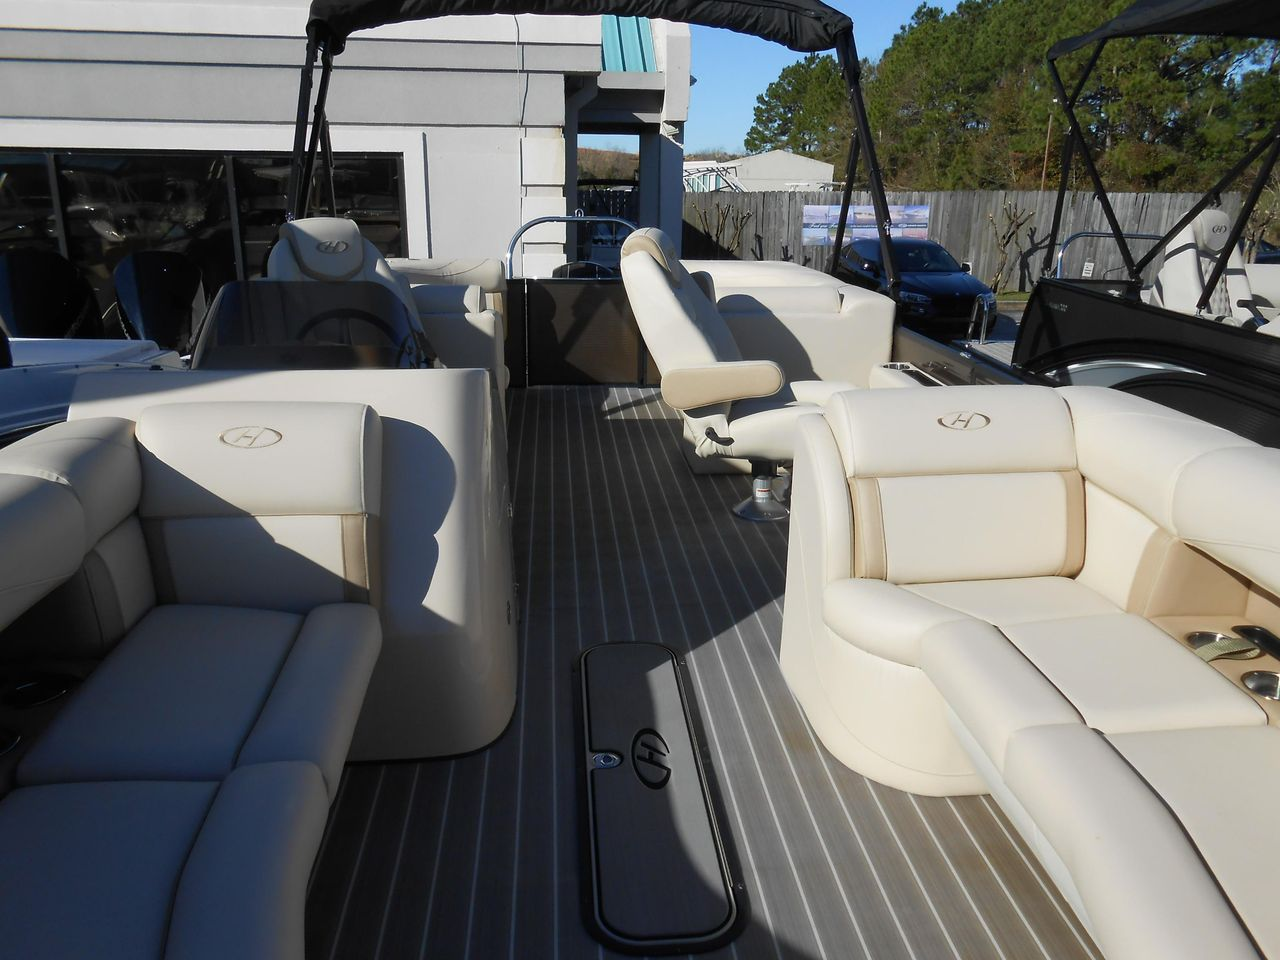 hight resolution of  new harris cruiser 230 pontoon boat for sale